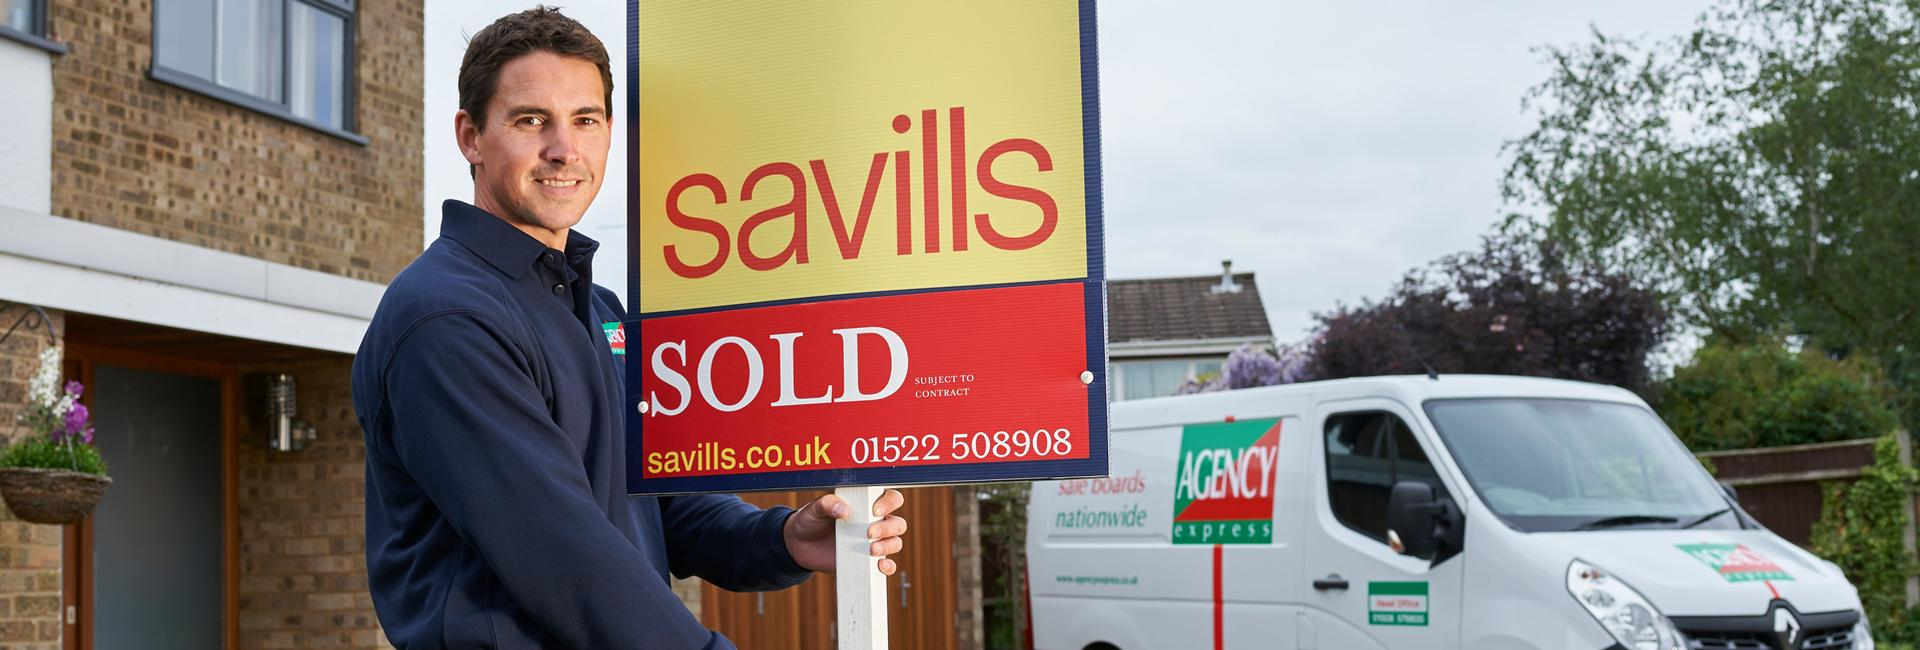 Estate agency sold board - UK property activity